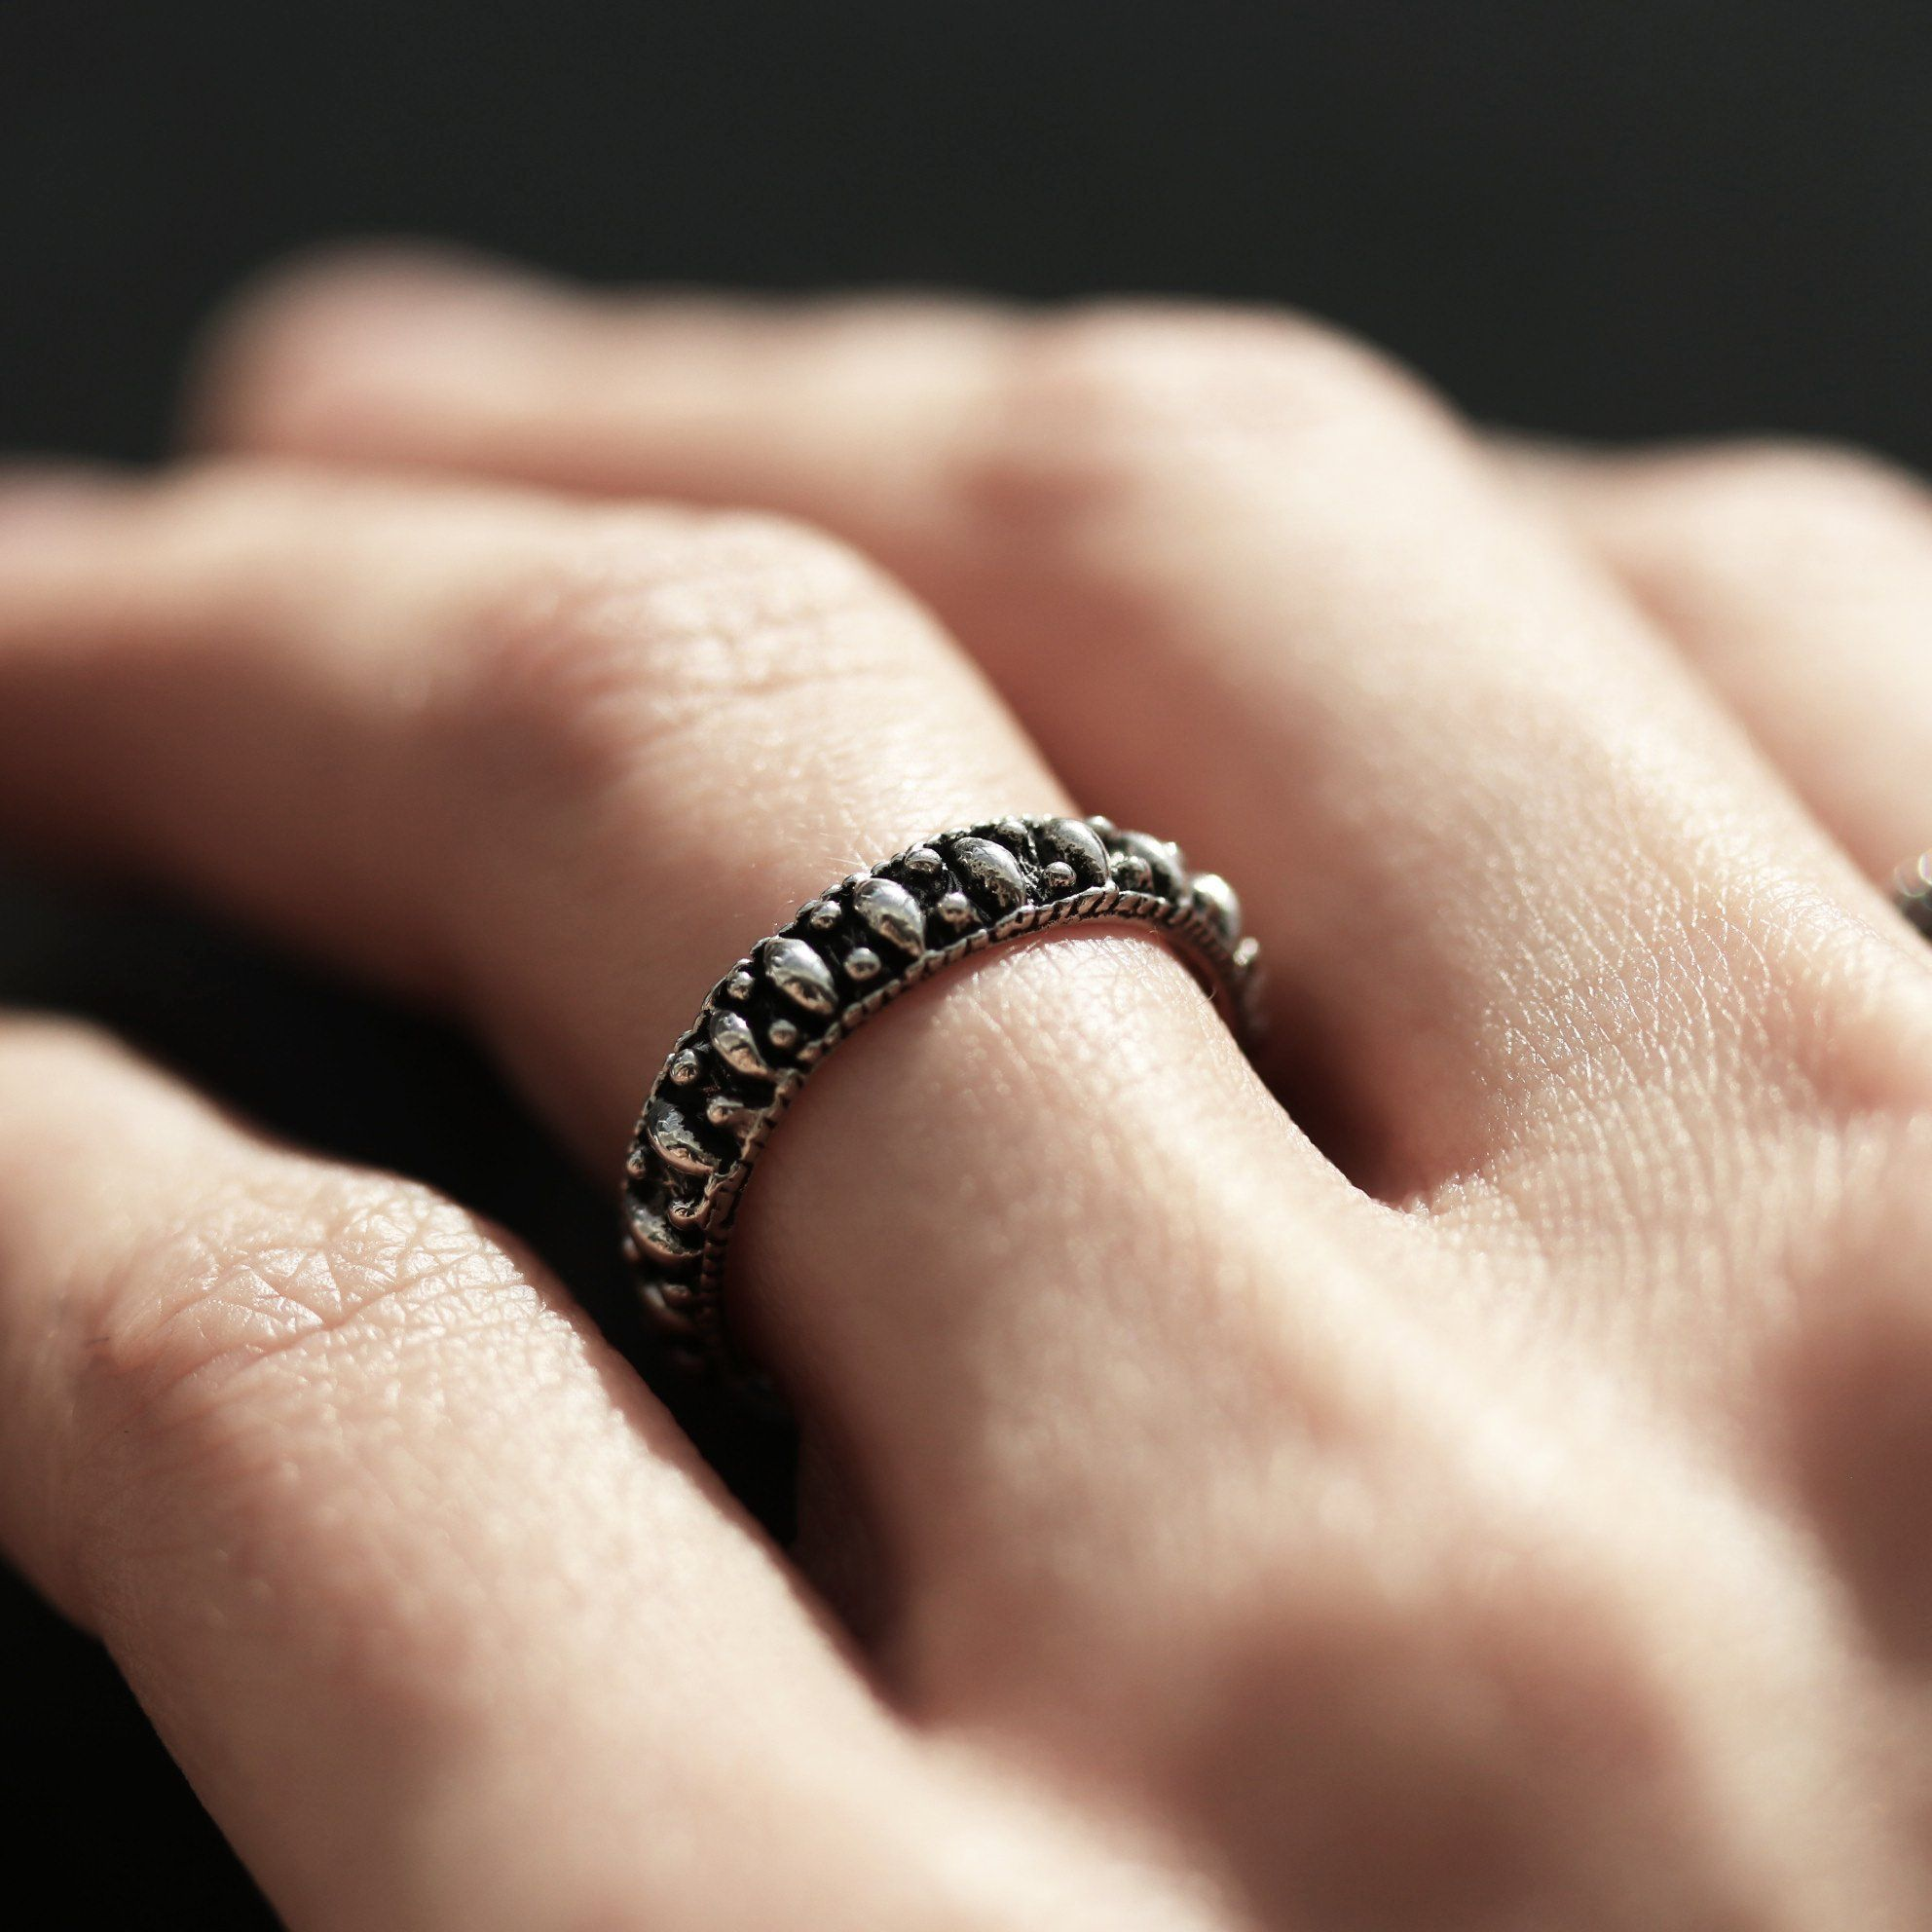 thumb ocollection rap rings ring jewelsssss pinterest pin feather around